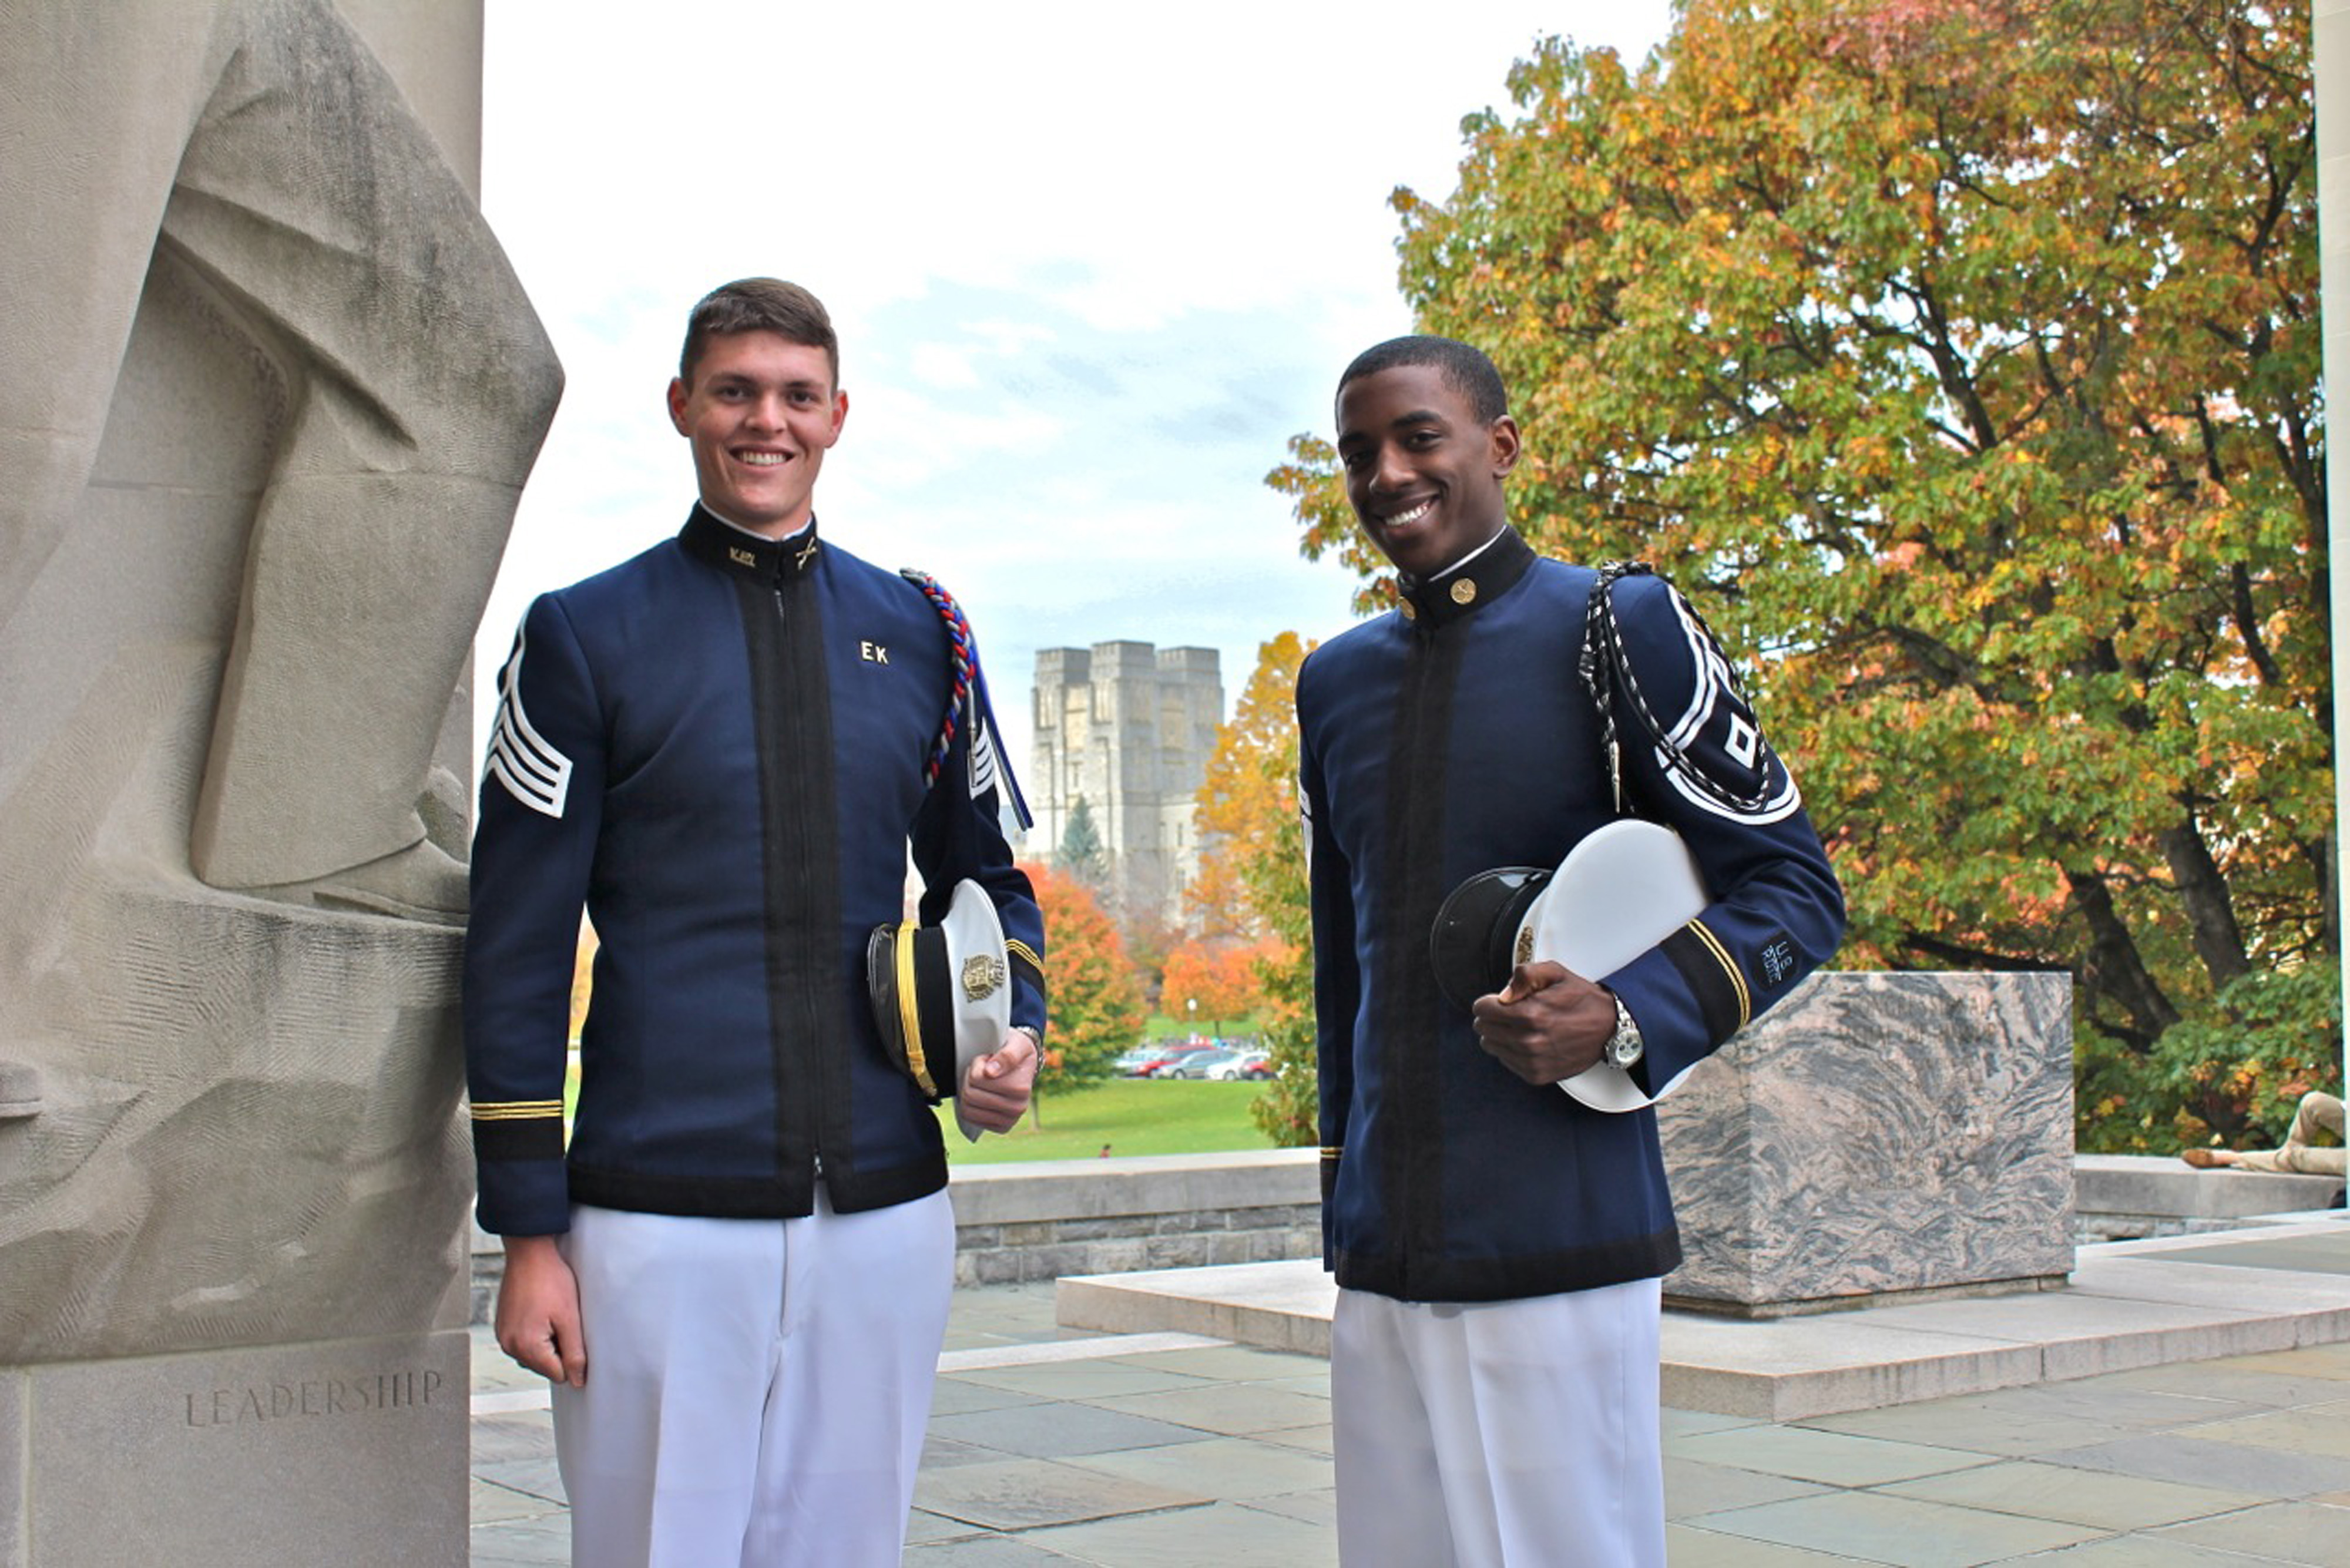 From left to right are Cadets James Harvey and Luke Carpenter standing at the War Memorial